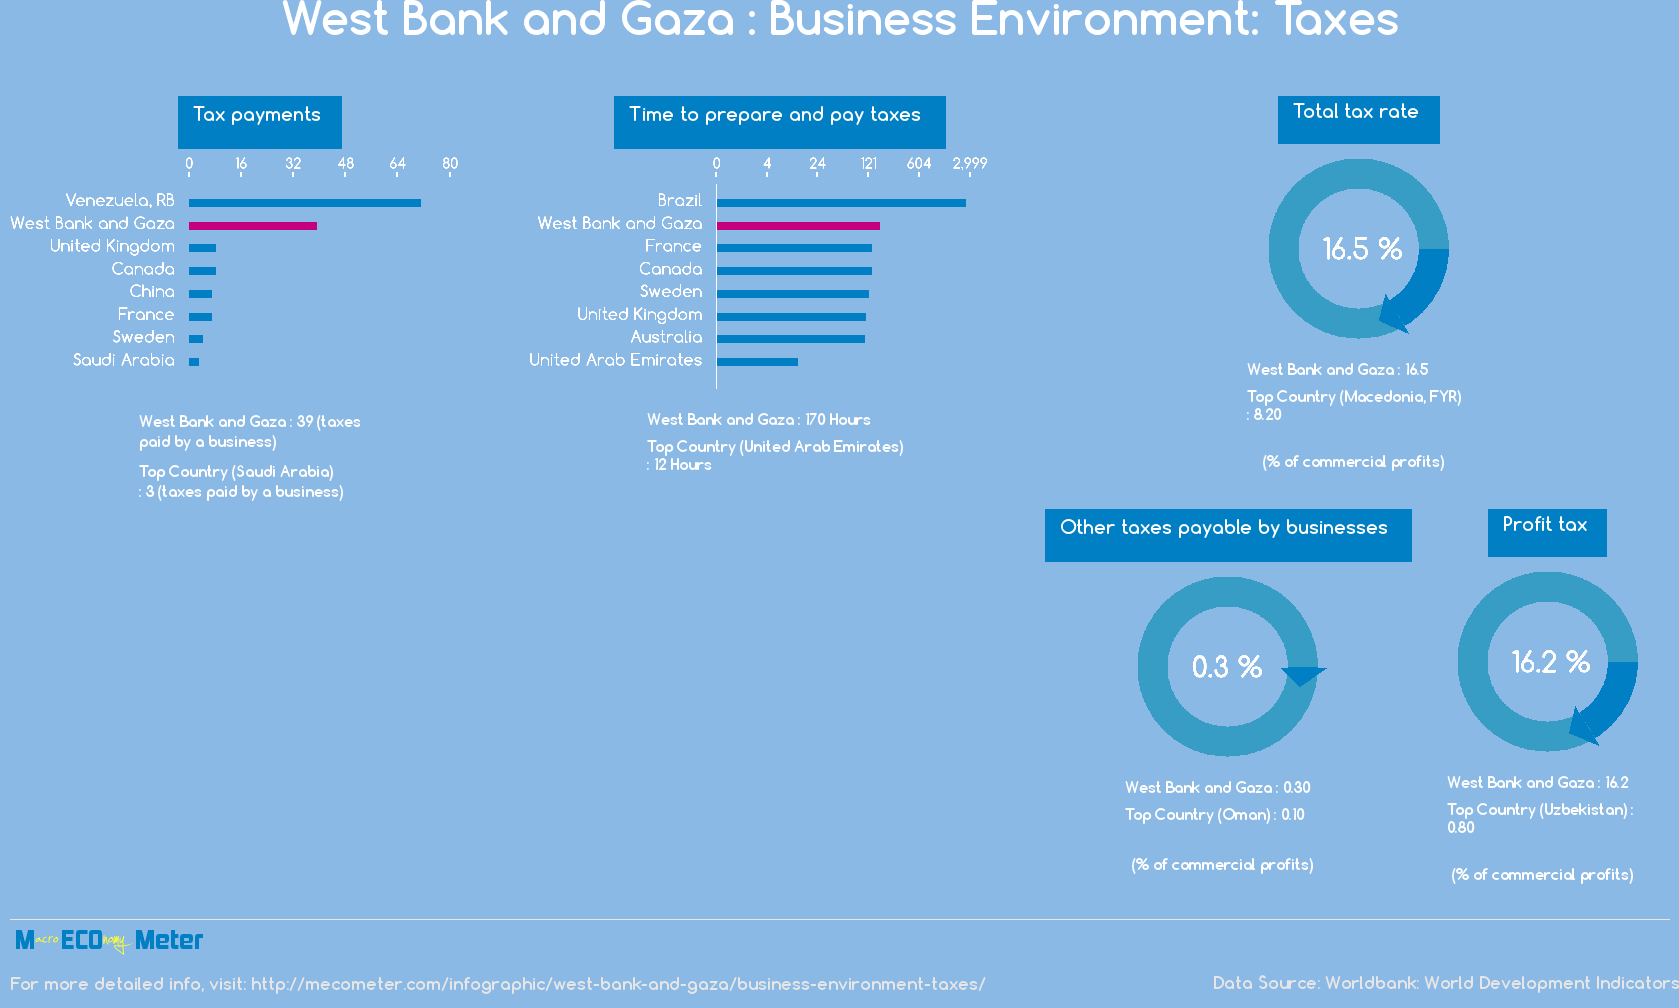 West Bank and Gaza : Business Environment: Taxes